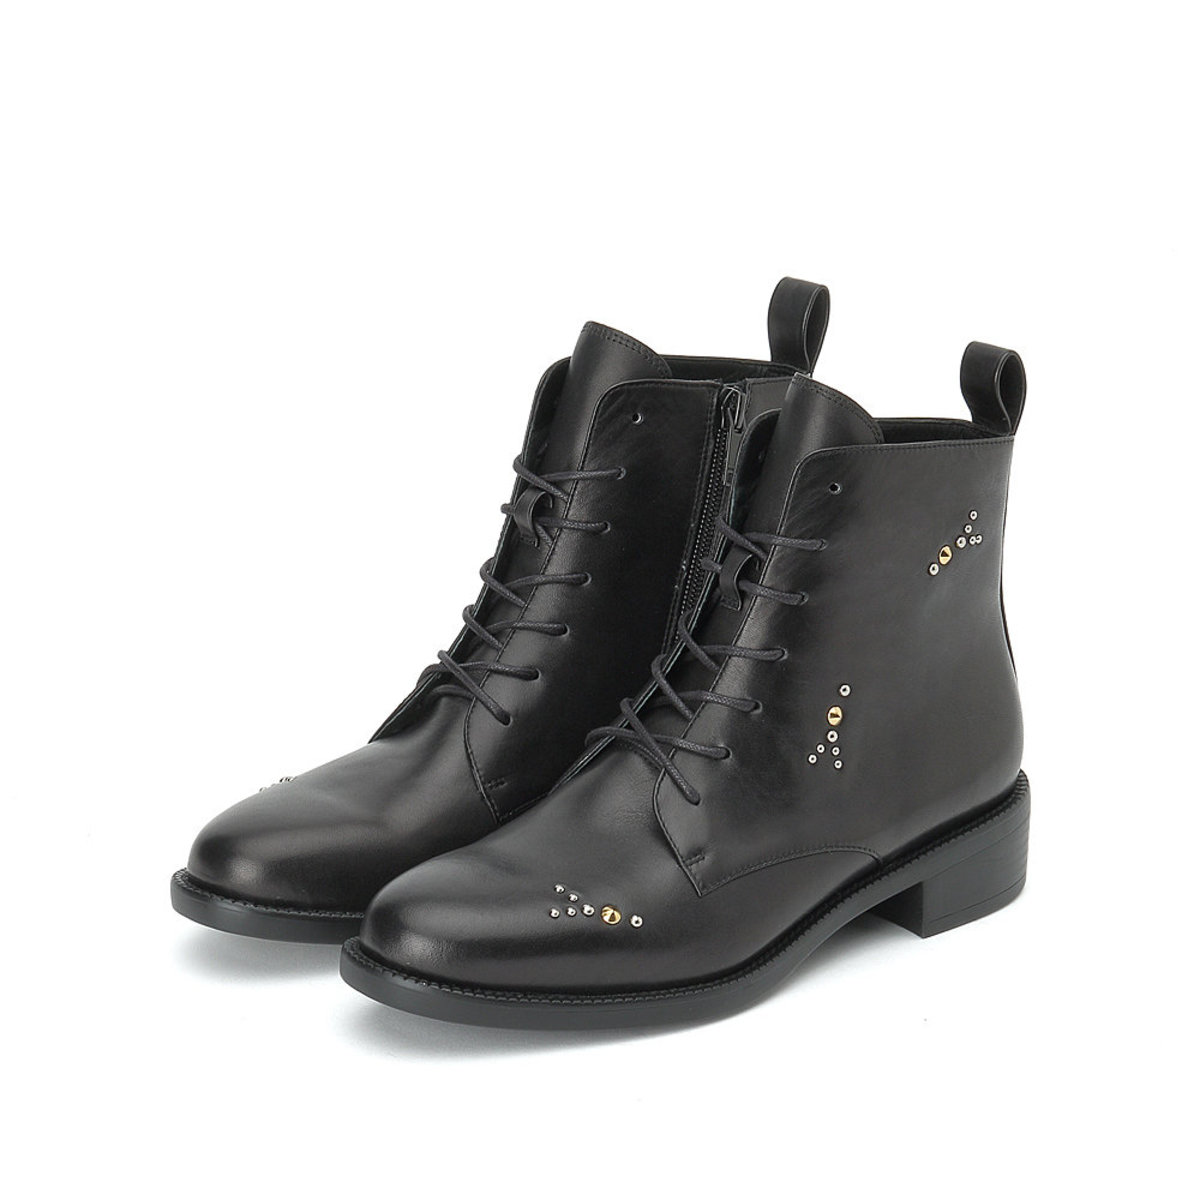 Calf Lace Up Boots in Black